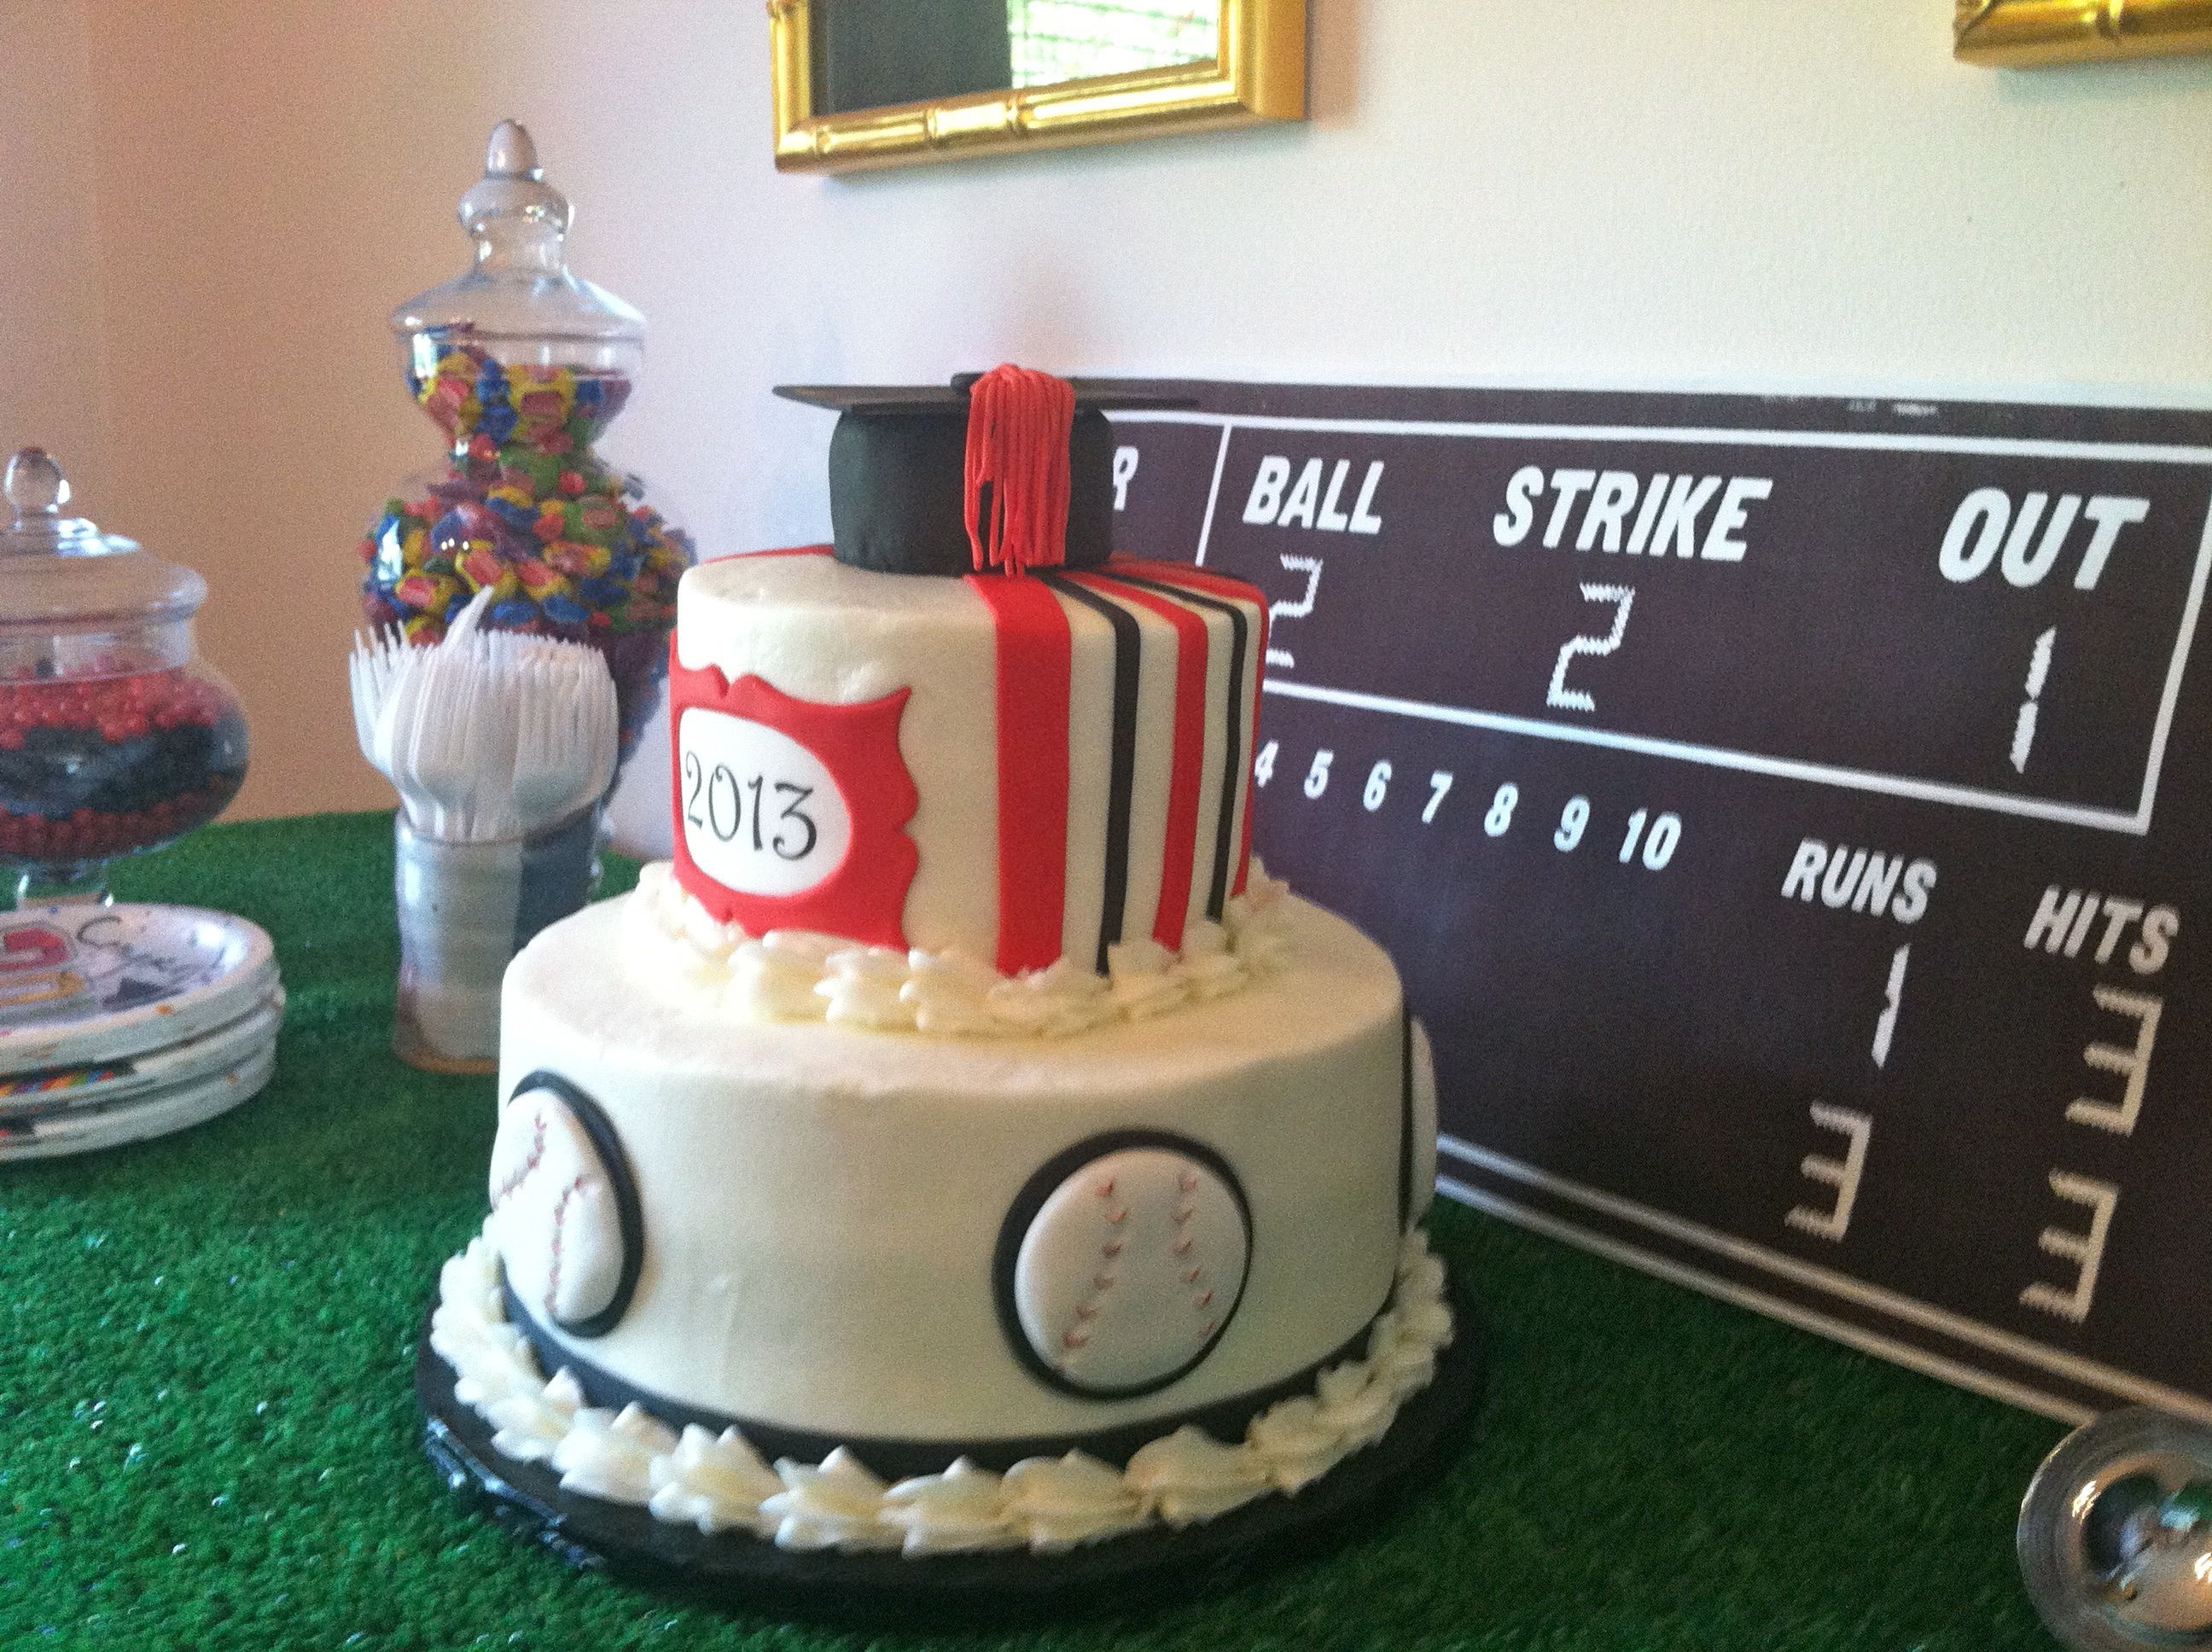 Another view of the cake.  Heather did a fantastic job!